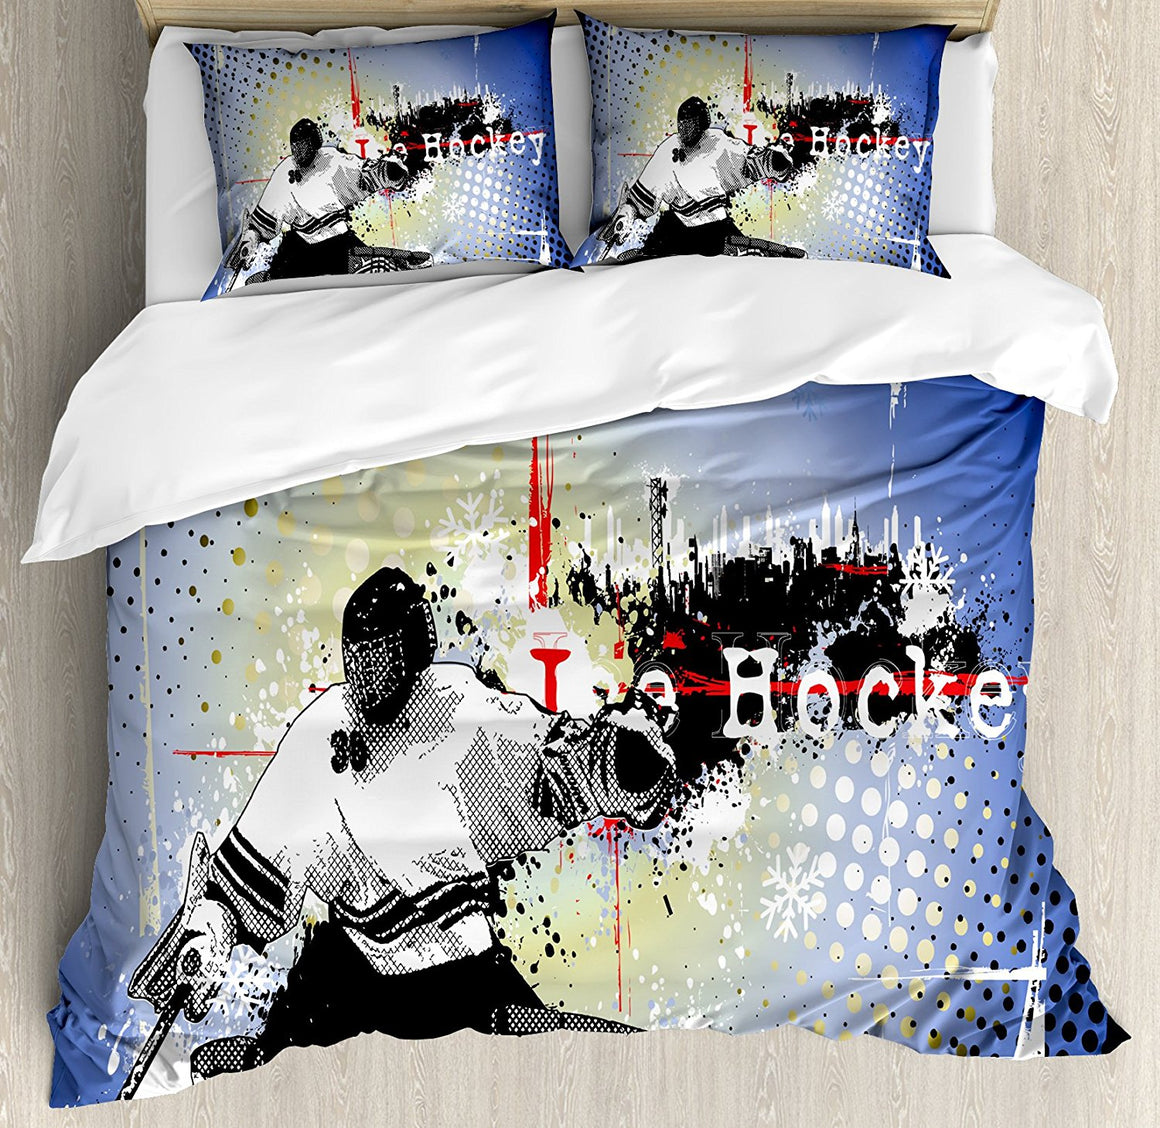 Hockey Goalie Bedding Set Duvet Cover, Pillow Cases and Bed Sheet - 3 pcs